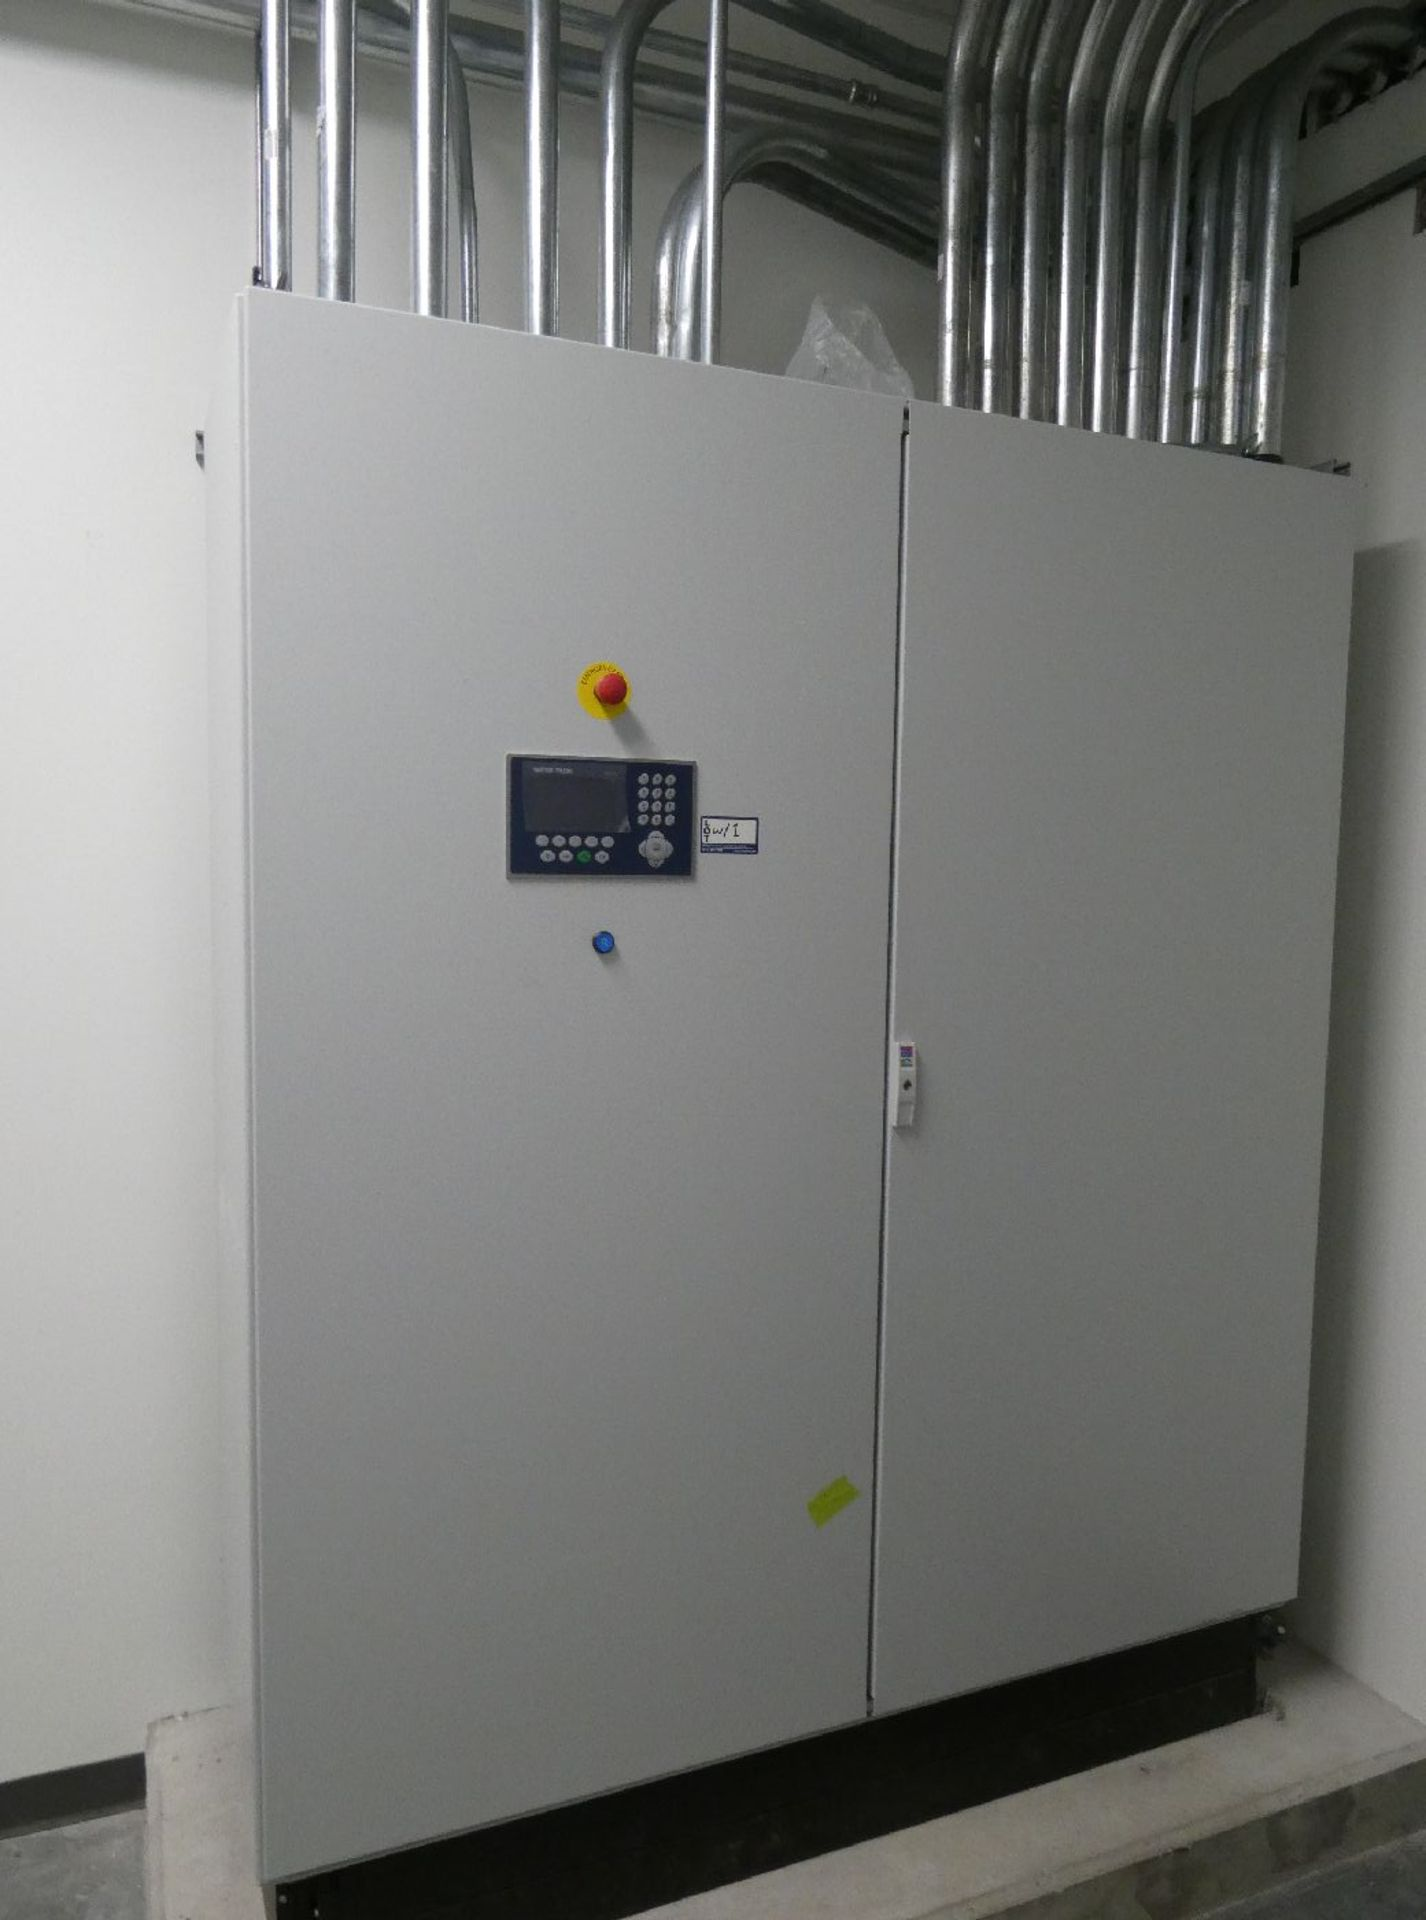 ROTAX Closed Loop Solvent Based Continuous Oil Extraction System - Image 51 of 68